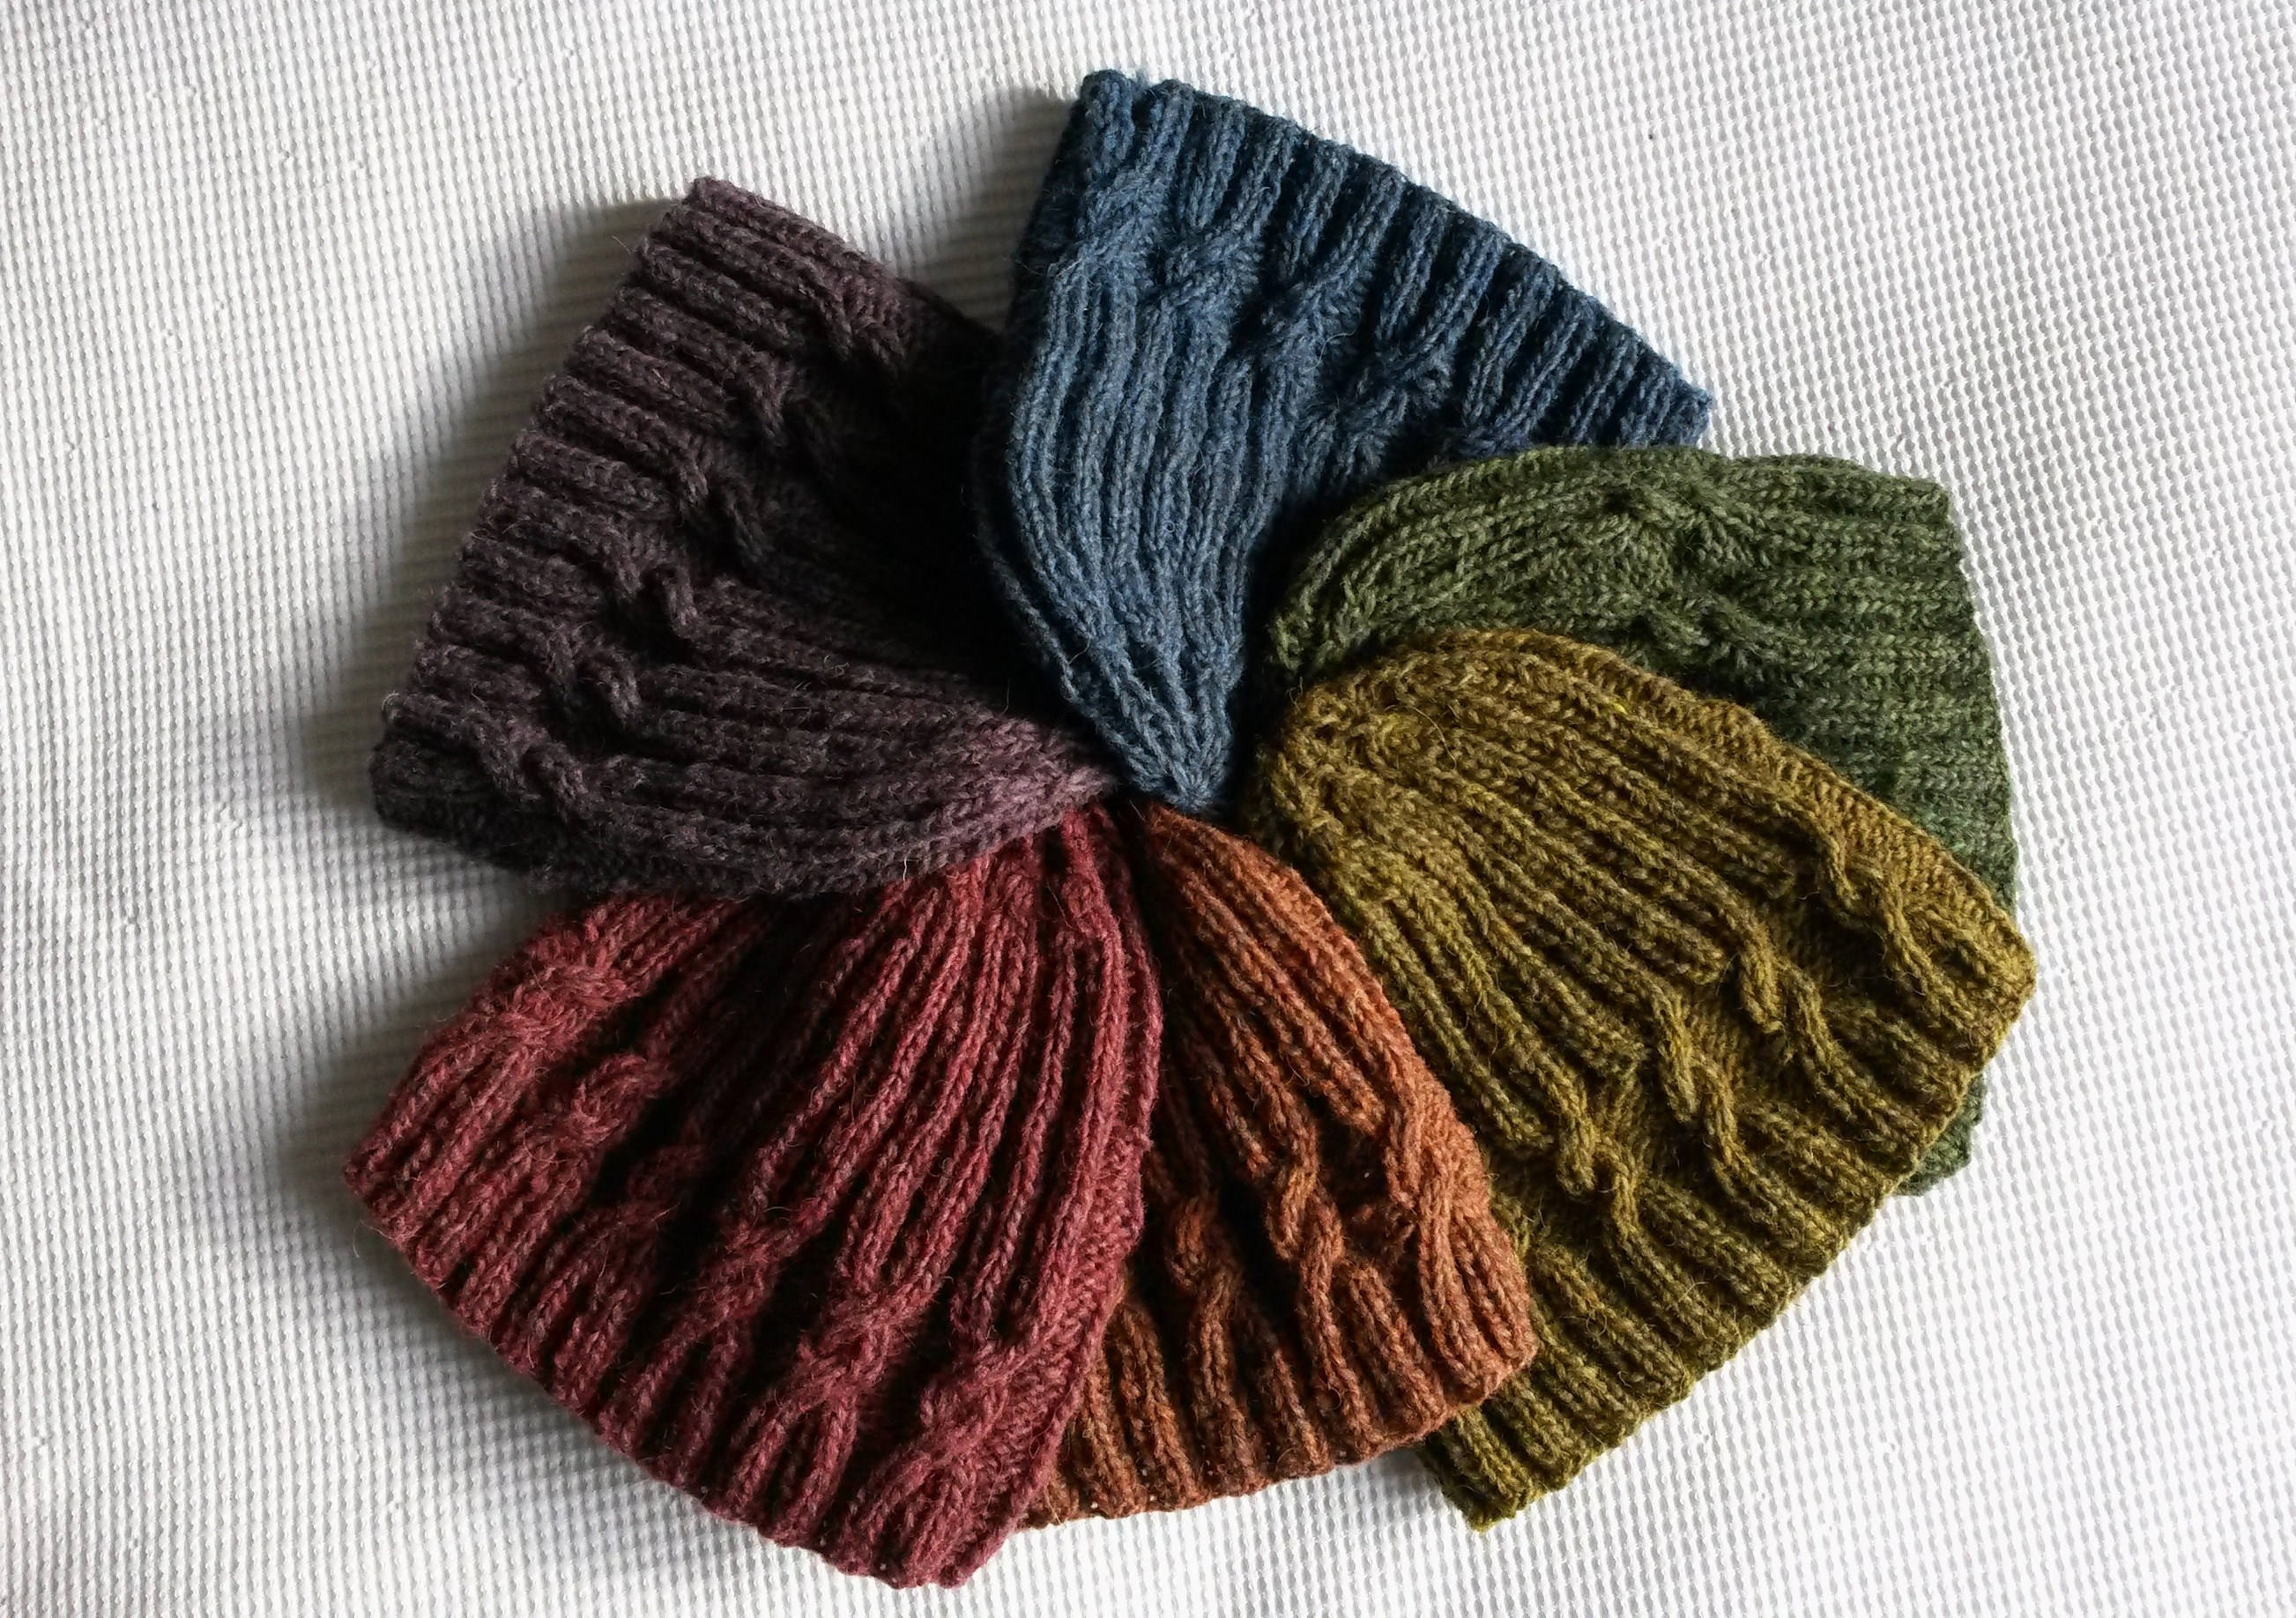 Seamless Knitting Patterns Knitting Pattern Small Spiral Cable Hat Pdf Instant Download